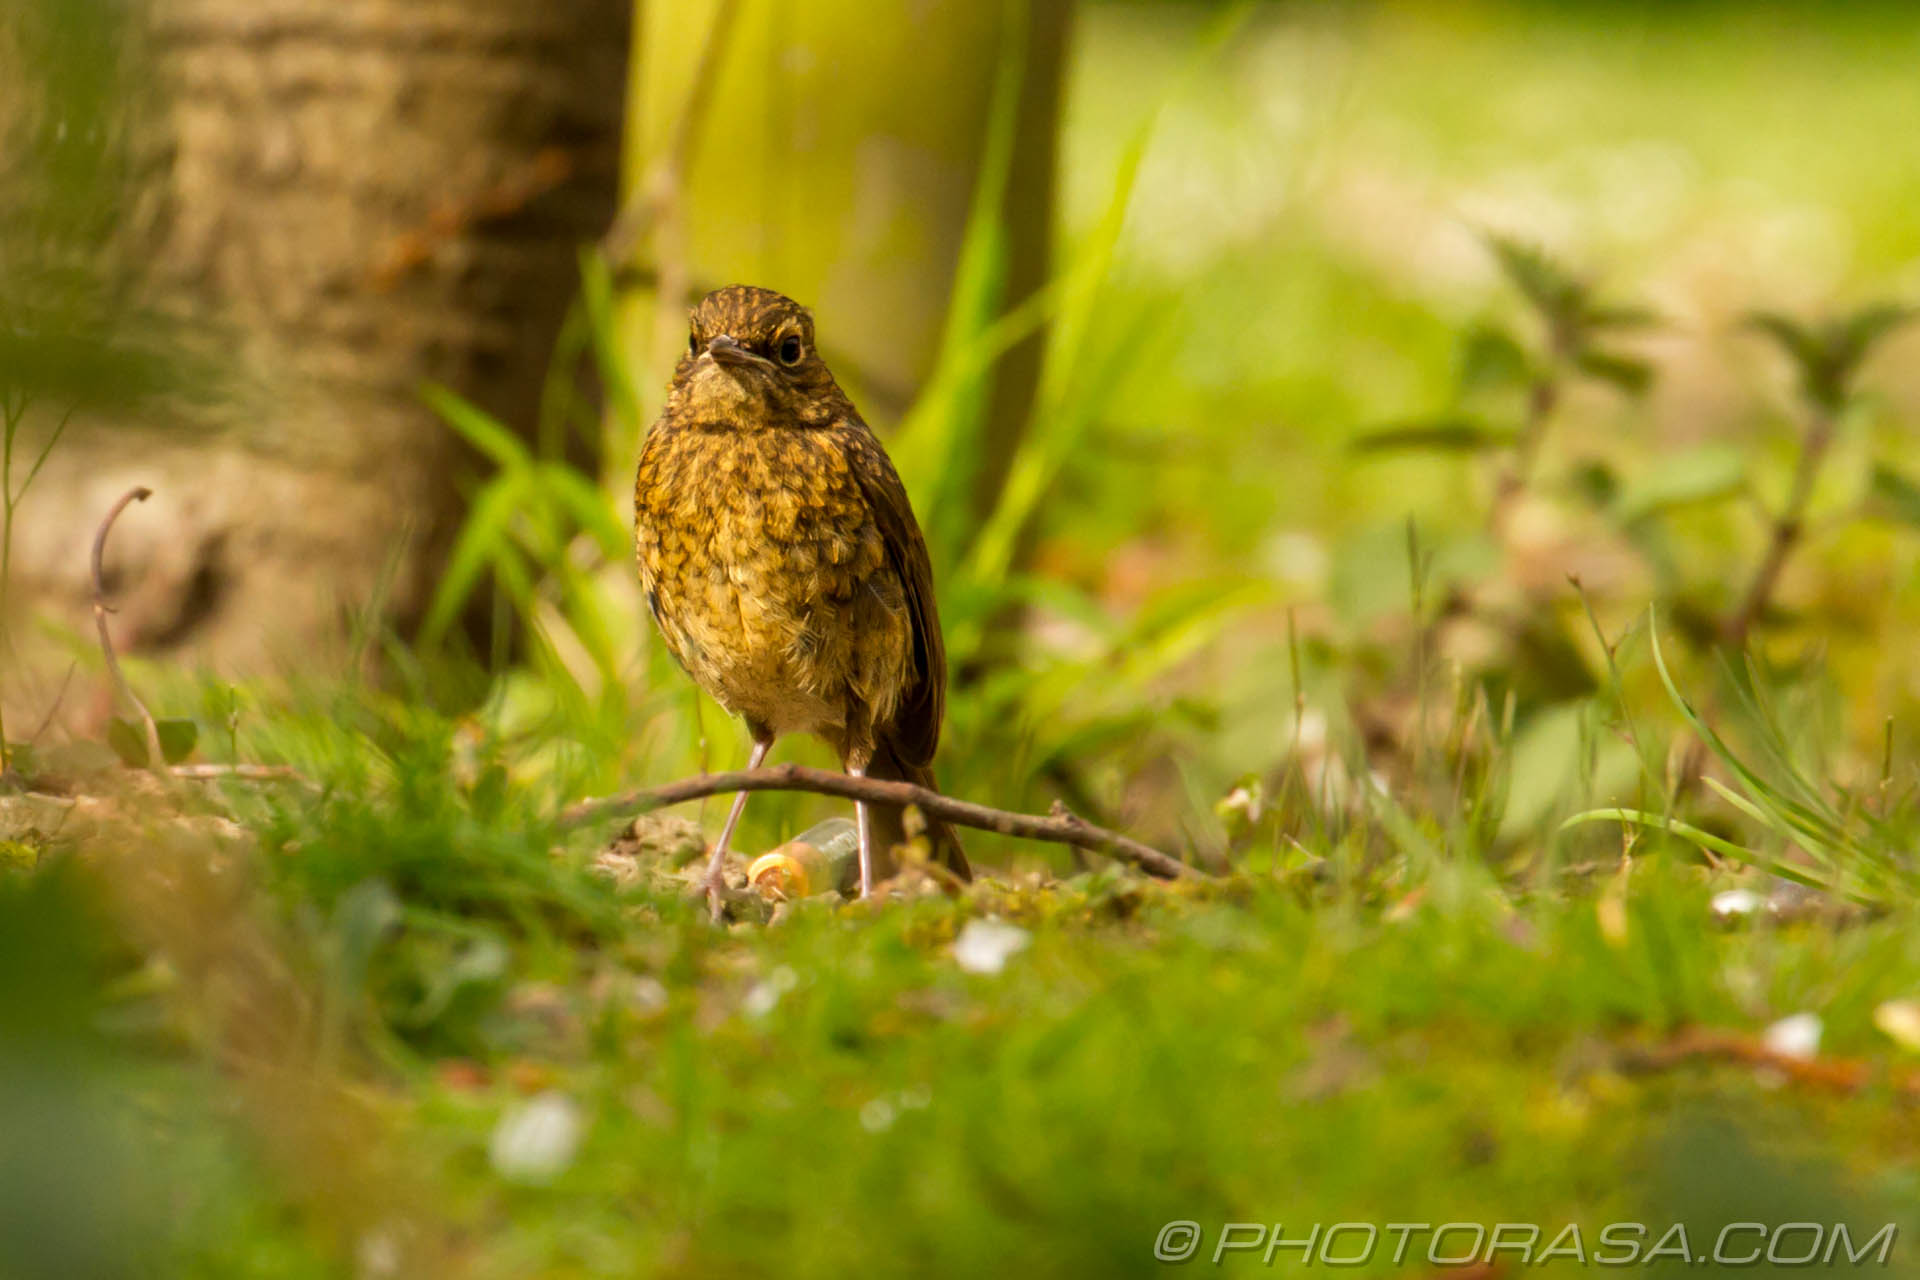 http://photorasa.com/young-robin-brown-orange/low-to-the-ground/